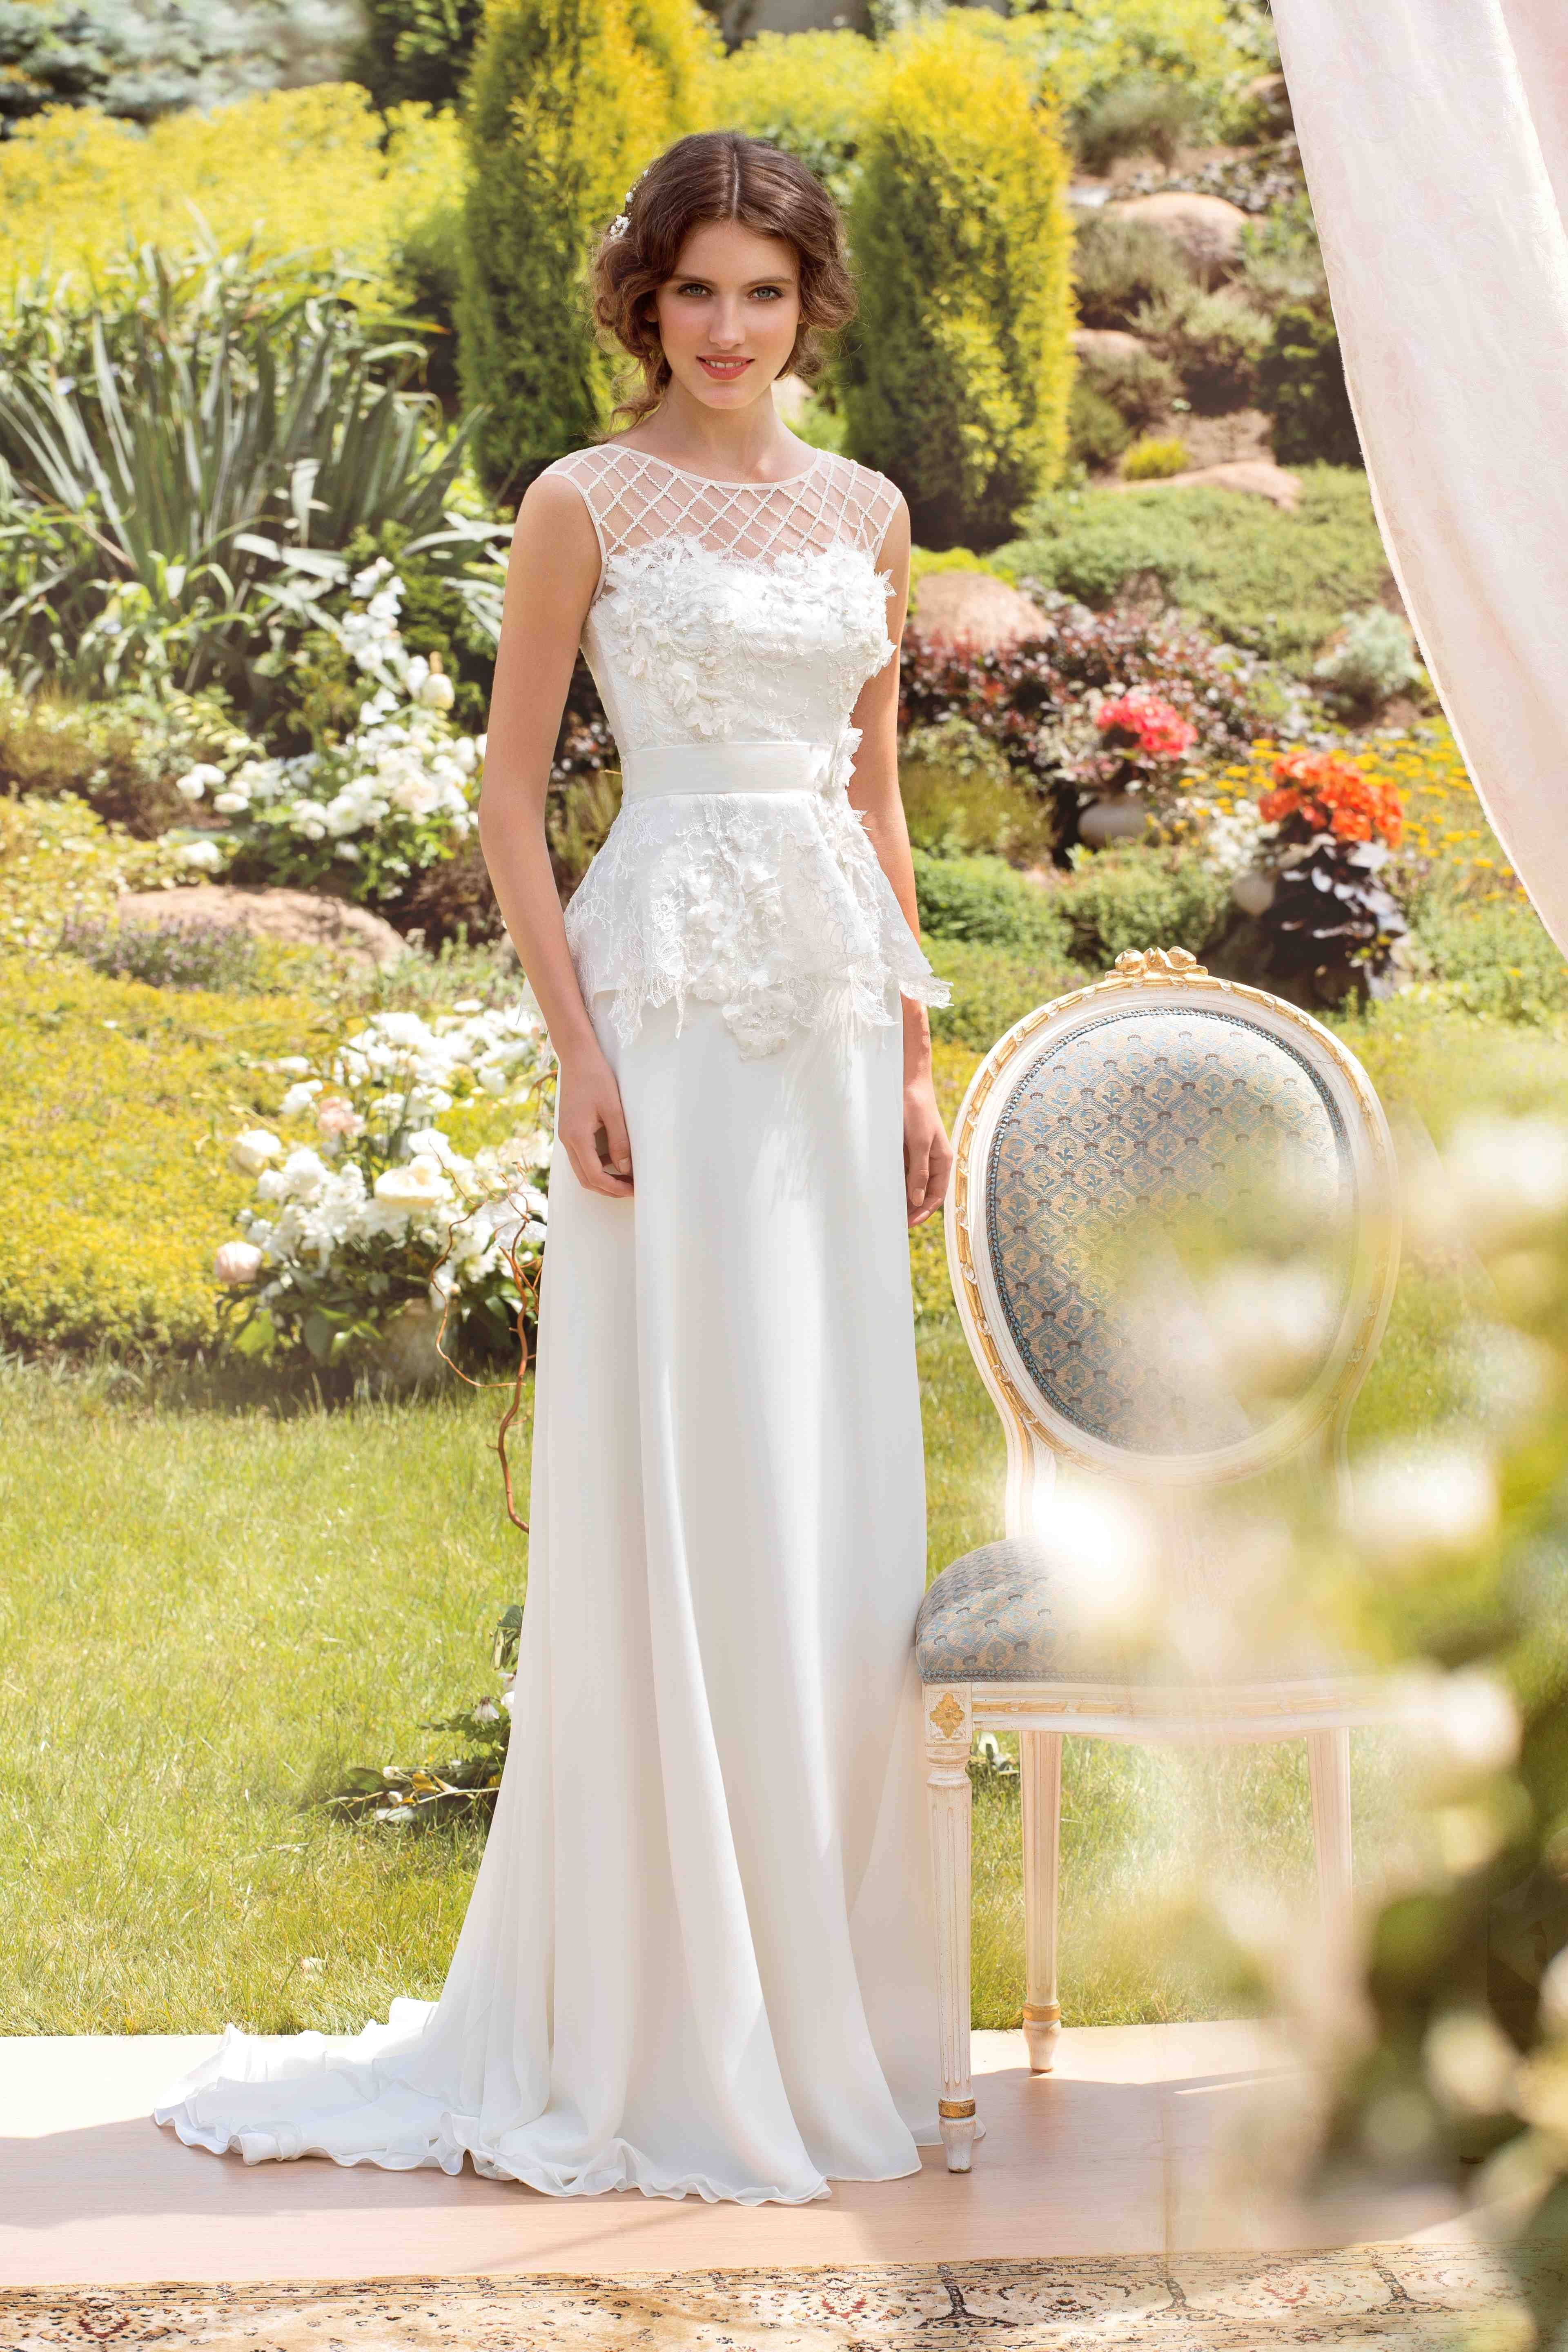 Cap sleeve peplum #wedding #gown with lace bodice and latticed ...